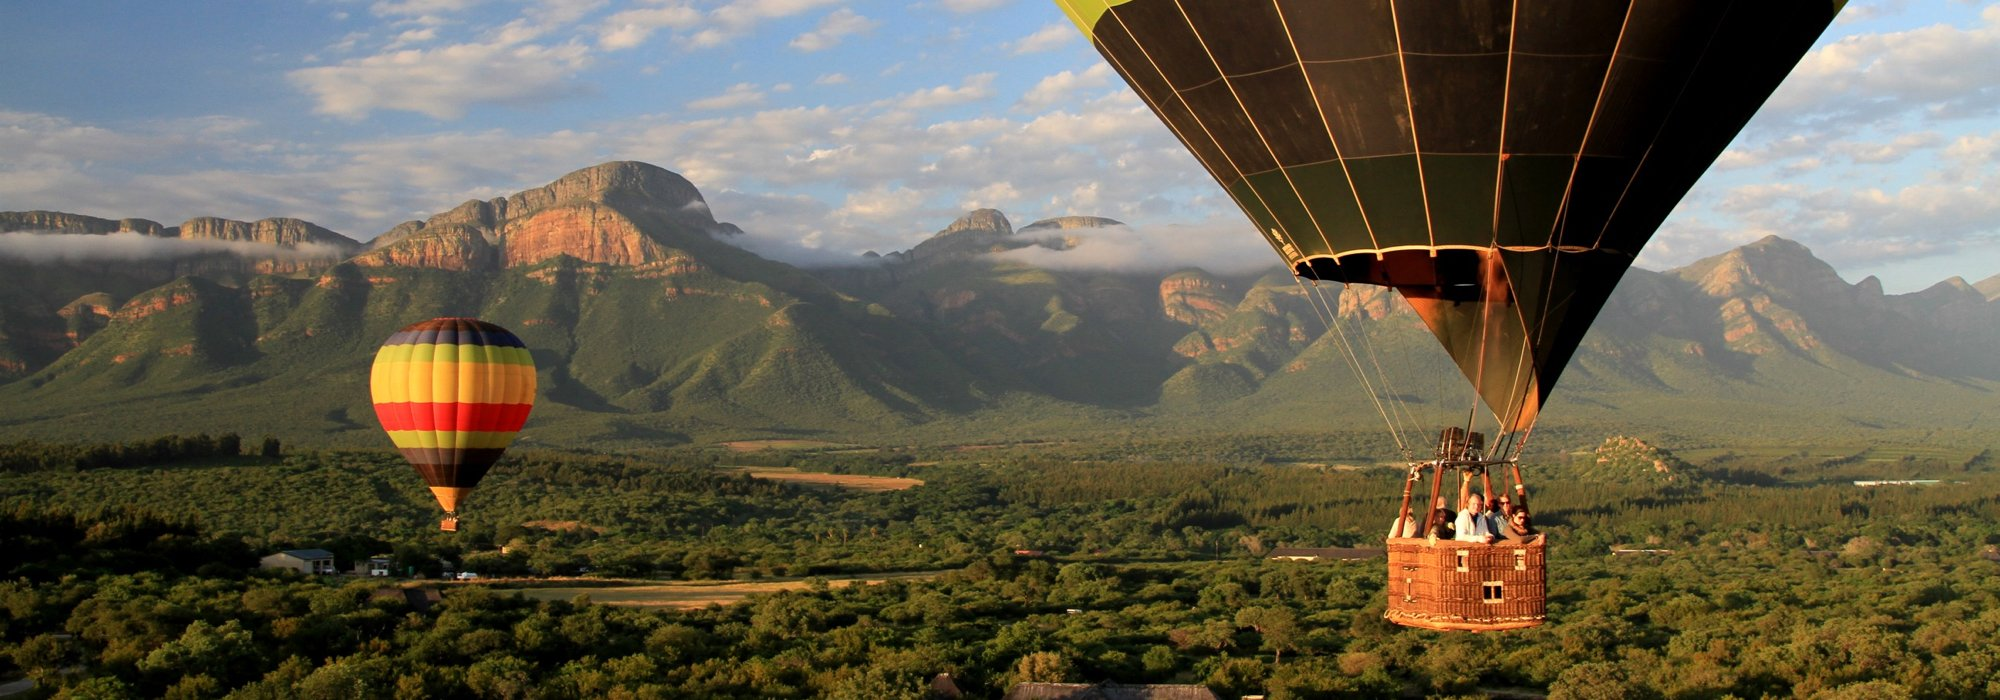 A Hot Air Balloon Safari in South Africa